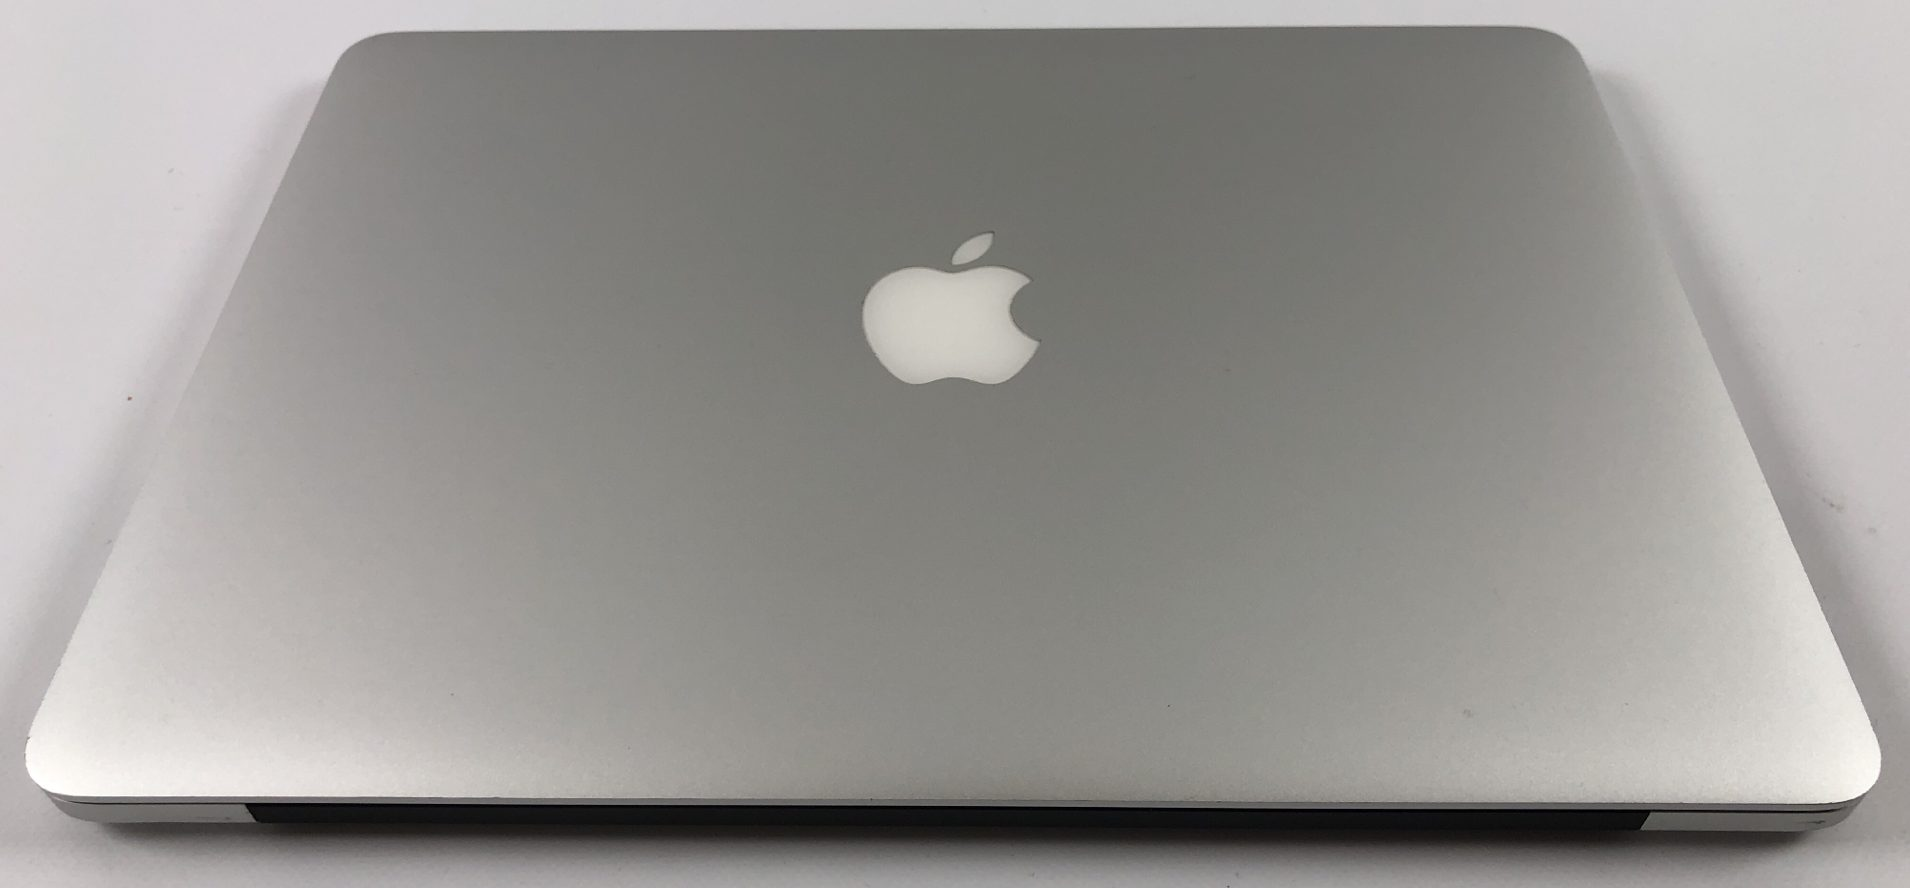 "MacBook Pro Retina 13"" Early 2015 (Intel Core i7 3.1 GHz 16 GB RAM 512 GB SSD), Intel Core i7 3.1 GHz, 16 GB RAM, 512 GB SSD, bild 2"